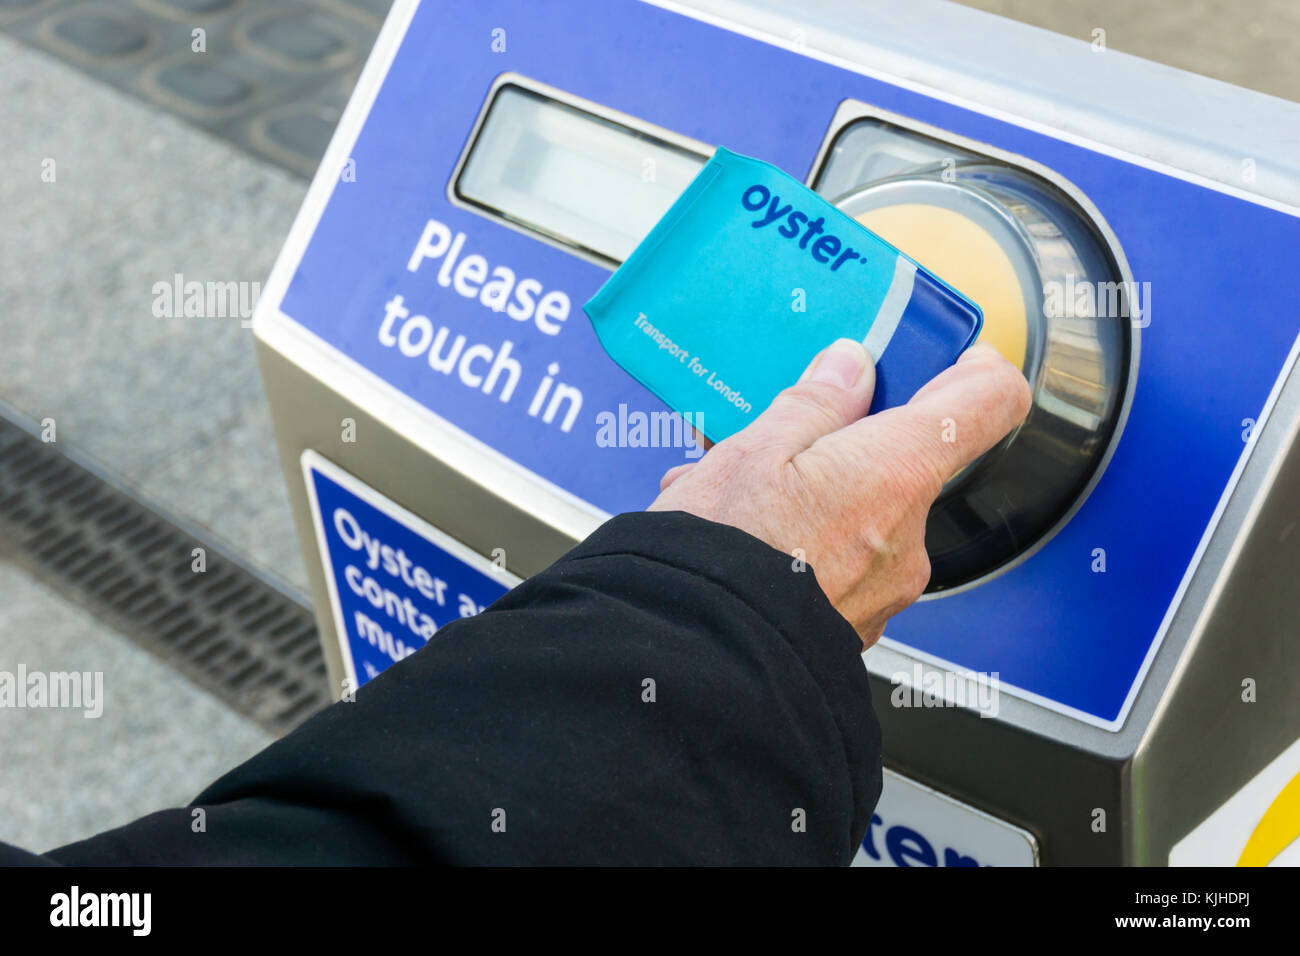 Passenger using a contactless Oyster card to pay the fare on London's public transport system - Stock Image